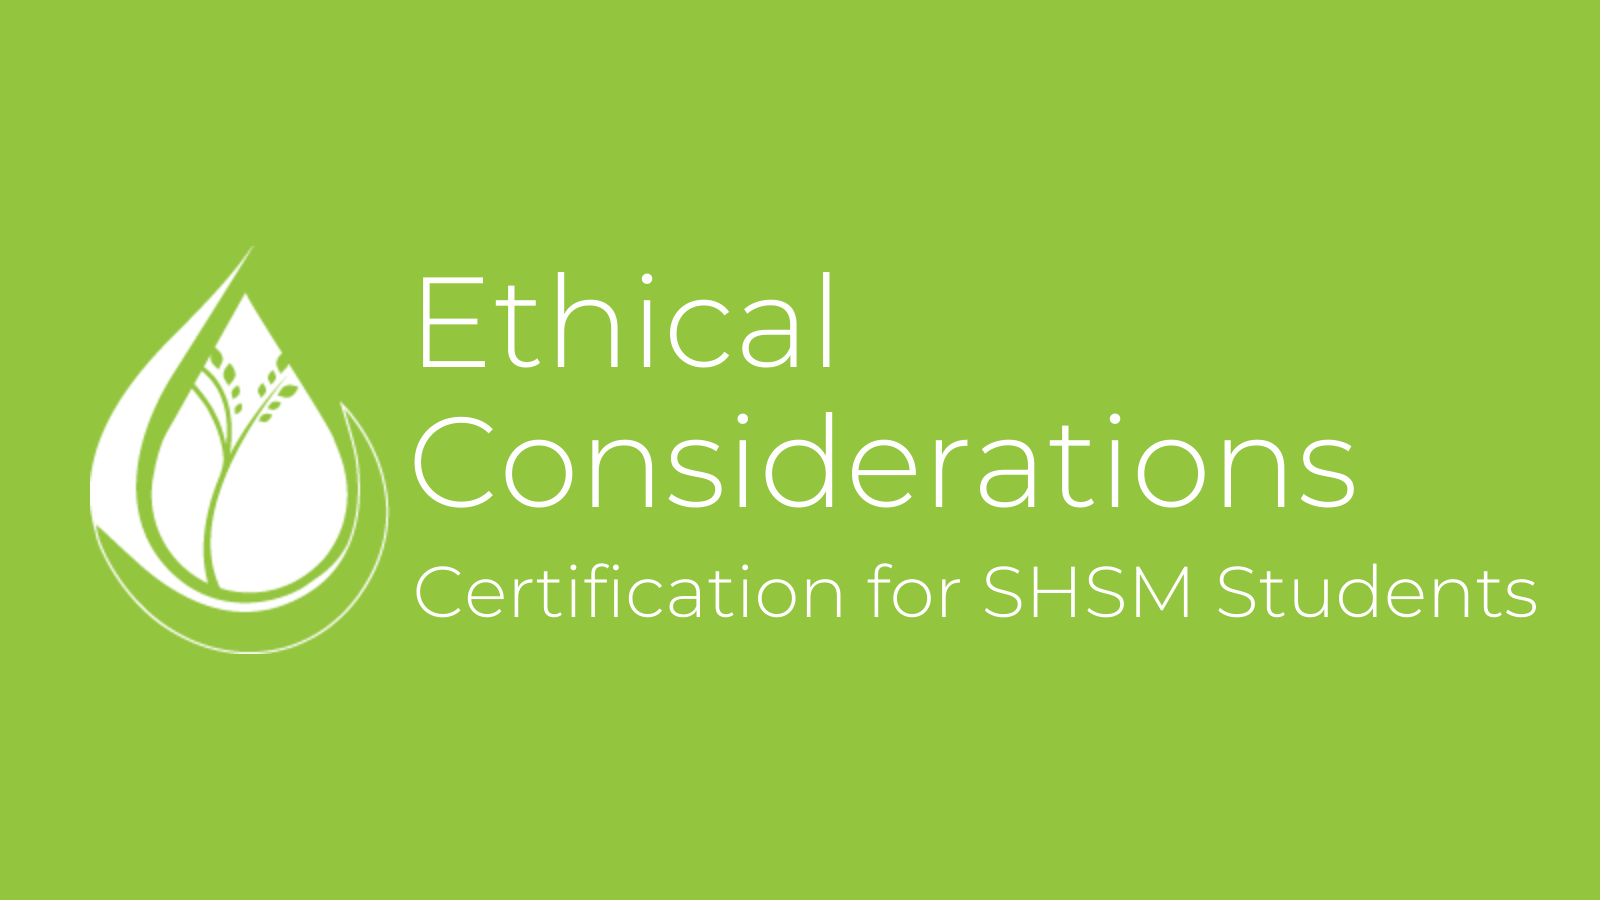 Ethical Considerations - Certification for SHSM Students